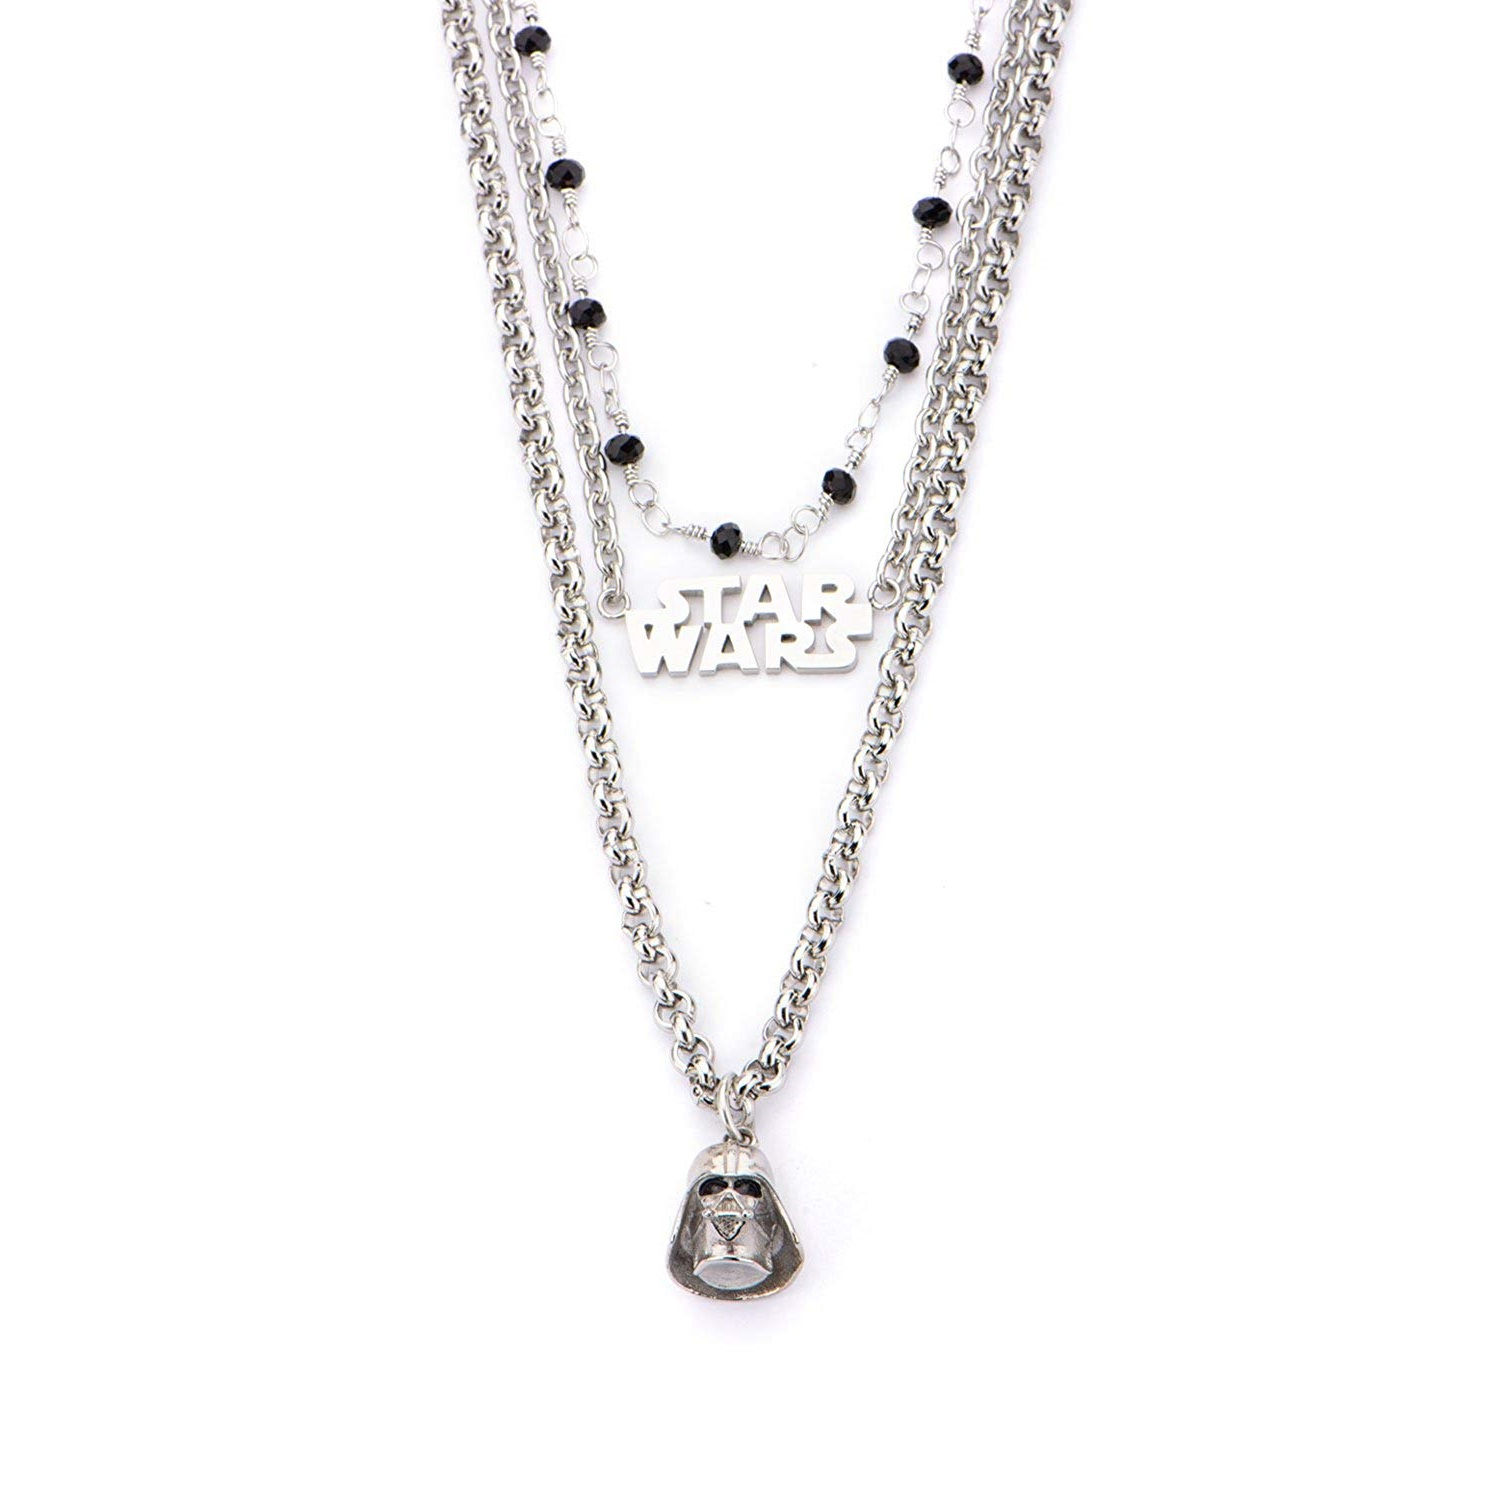 Body Vibe x Star Wars Darth Vader 3 Tiered Necklace on Amazon